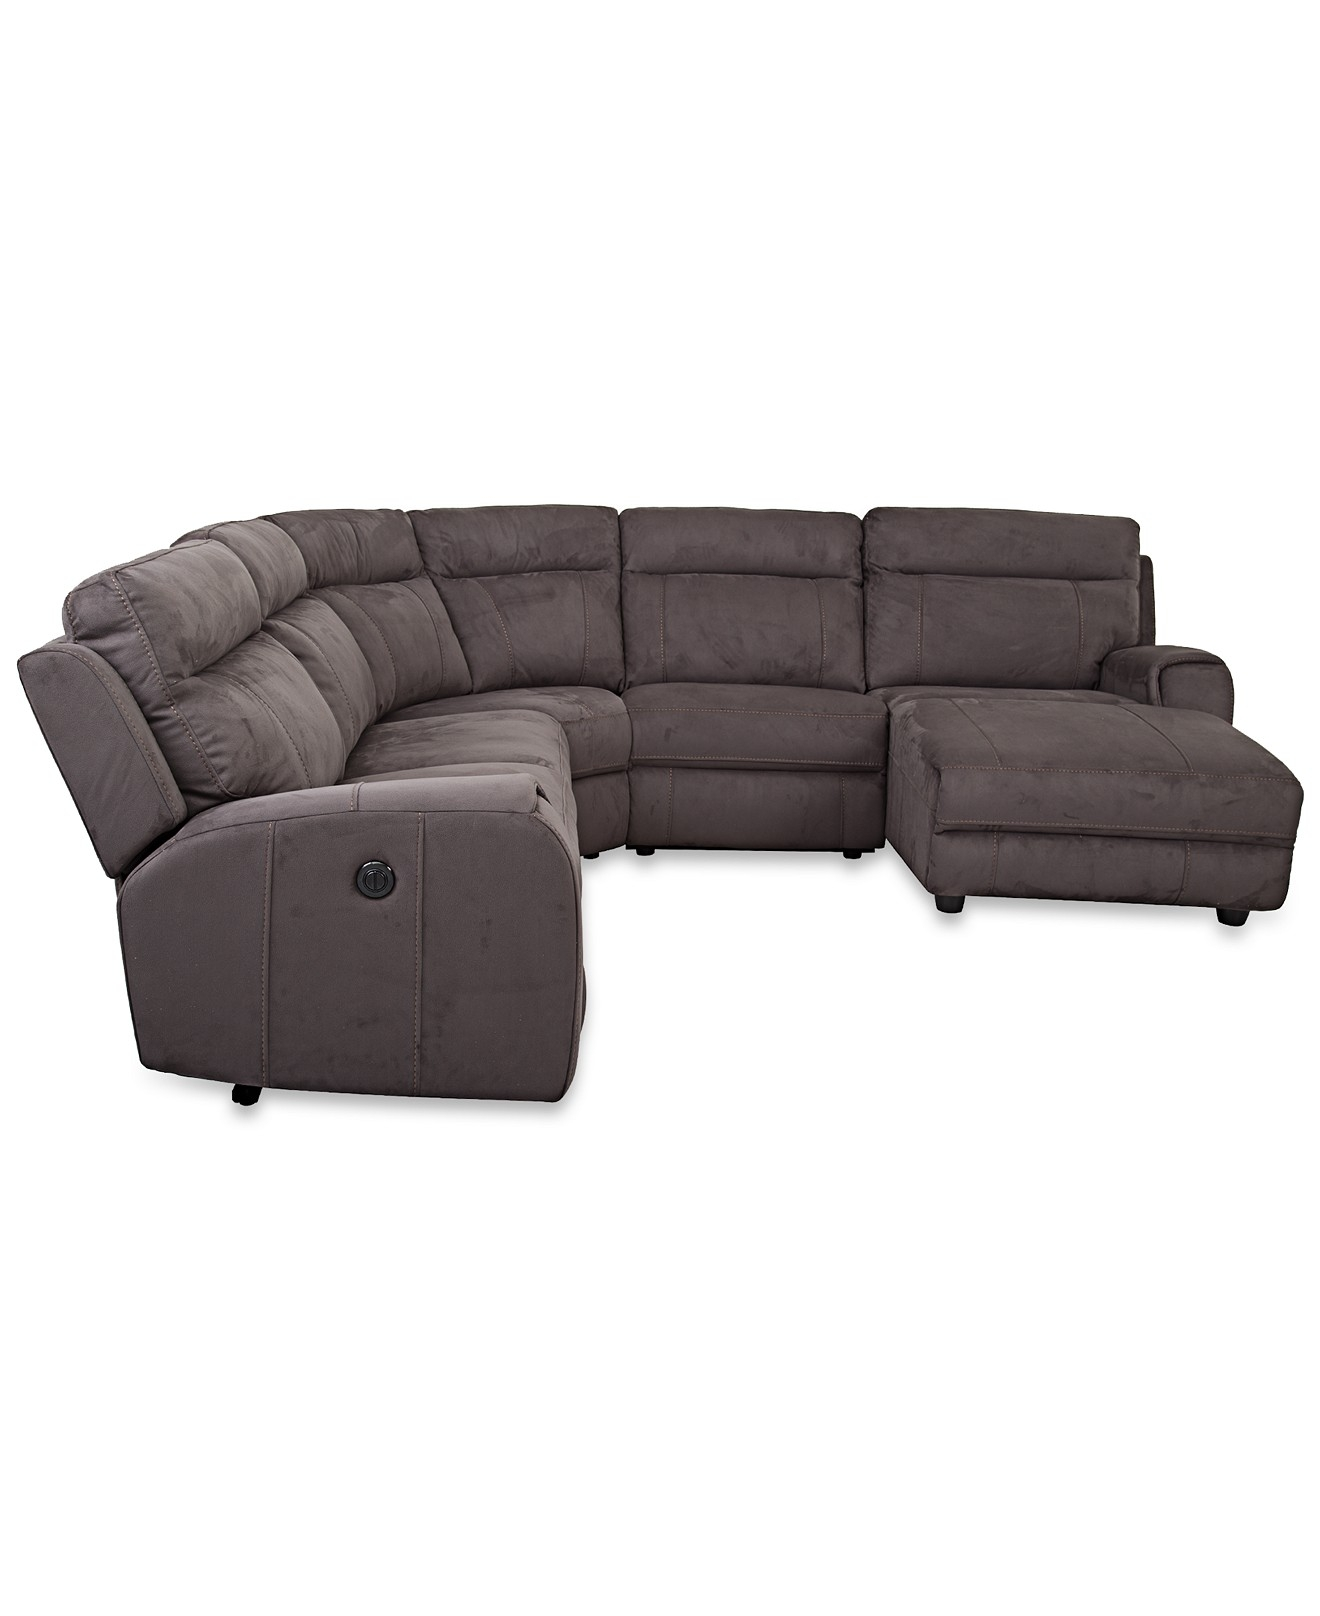 Extra Deep Sectional Sofas For Encourage Extra Houzz Shopping And Intended For 6 Piece Modular Sectional Sofa (Image 4 of 15)